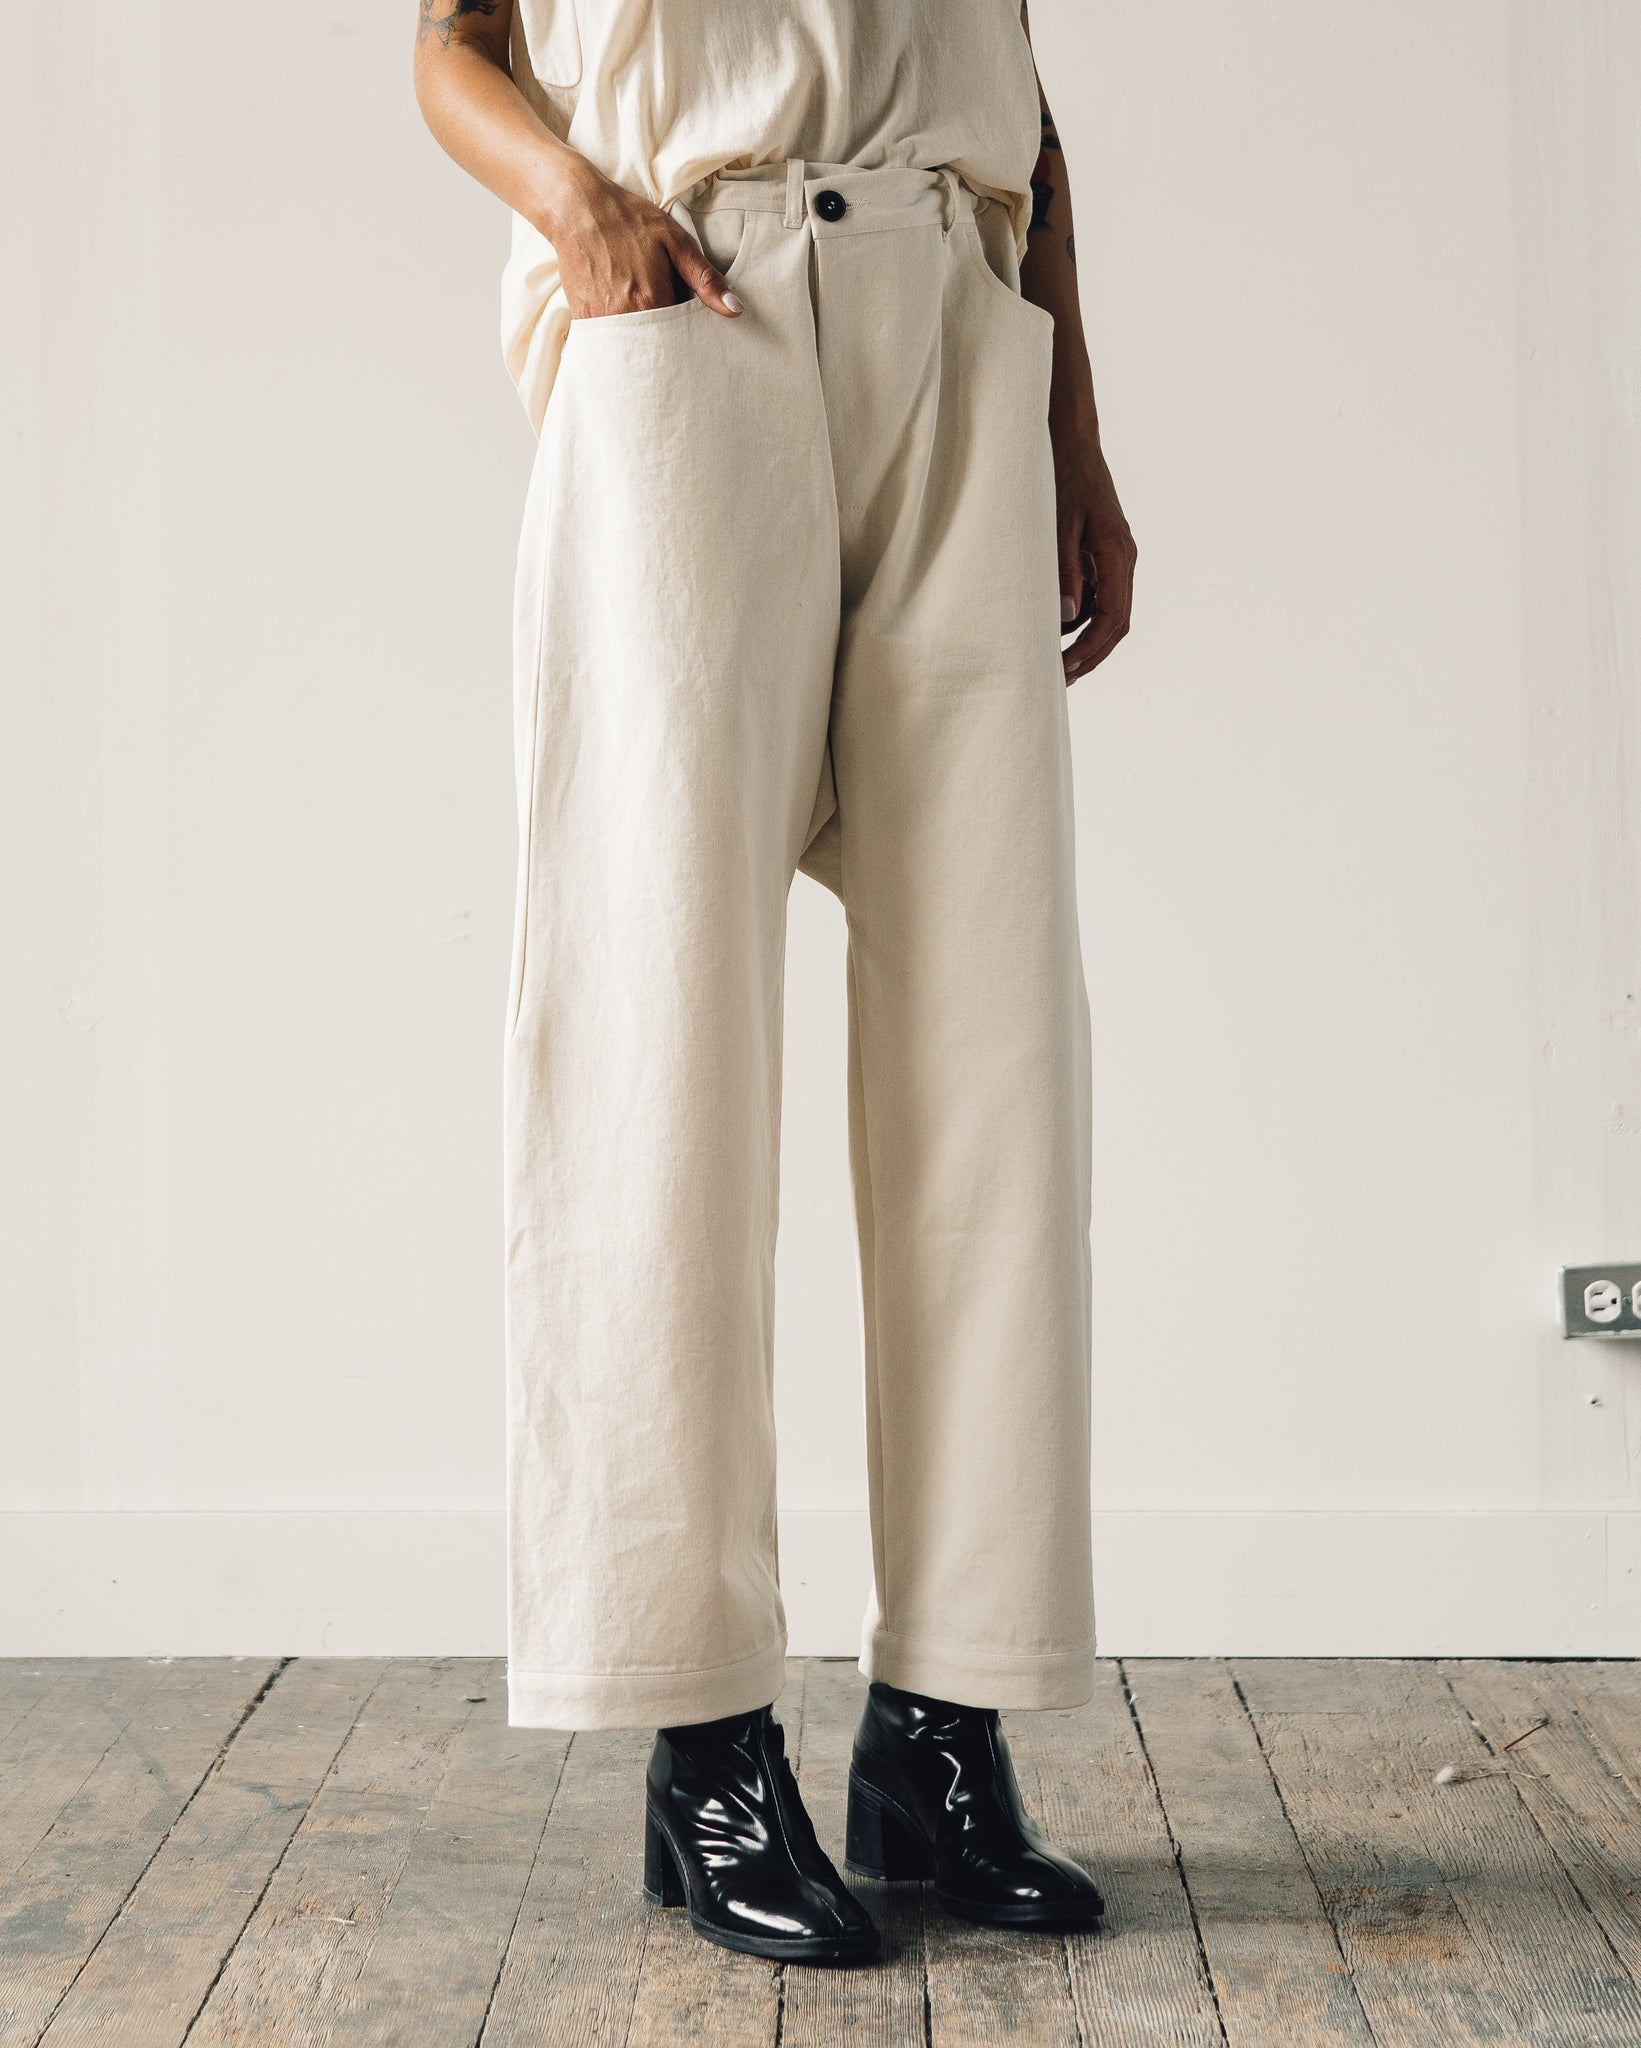 Jan-Jan Van Essche Trousers #53, Kinari Soft Denim